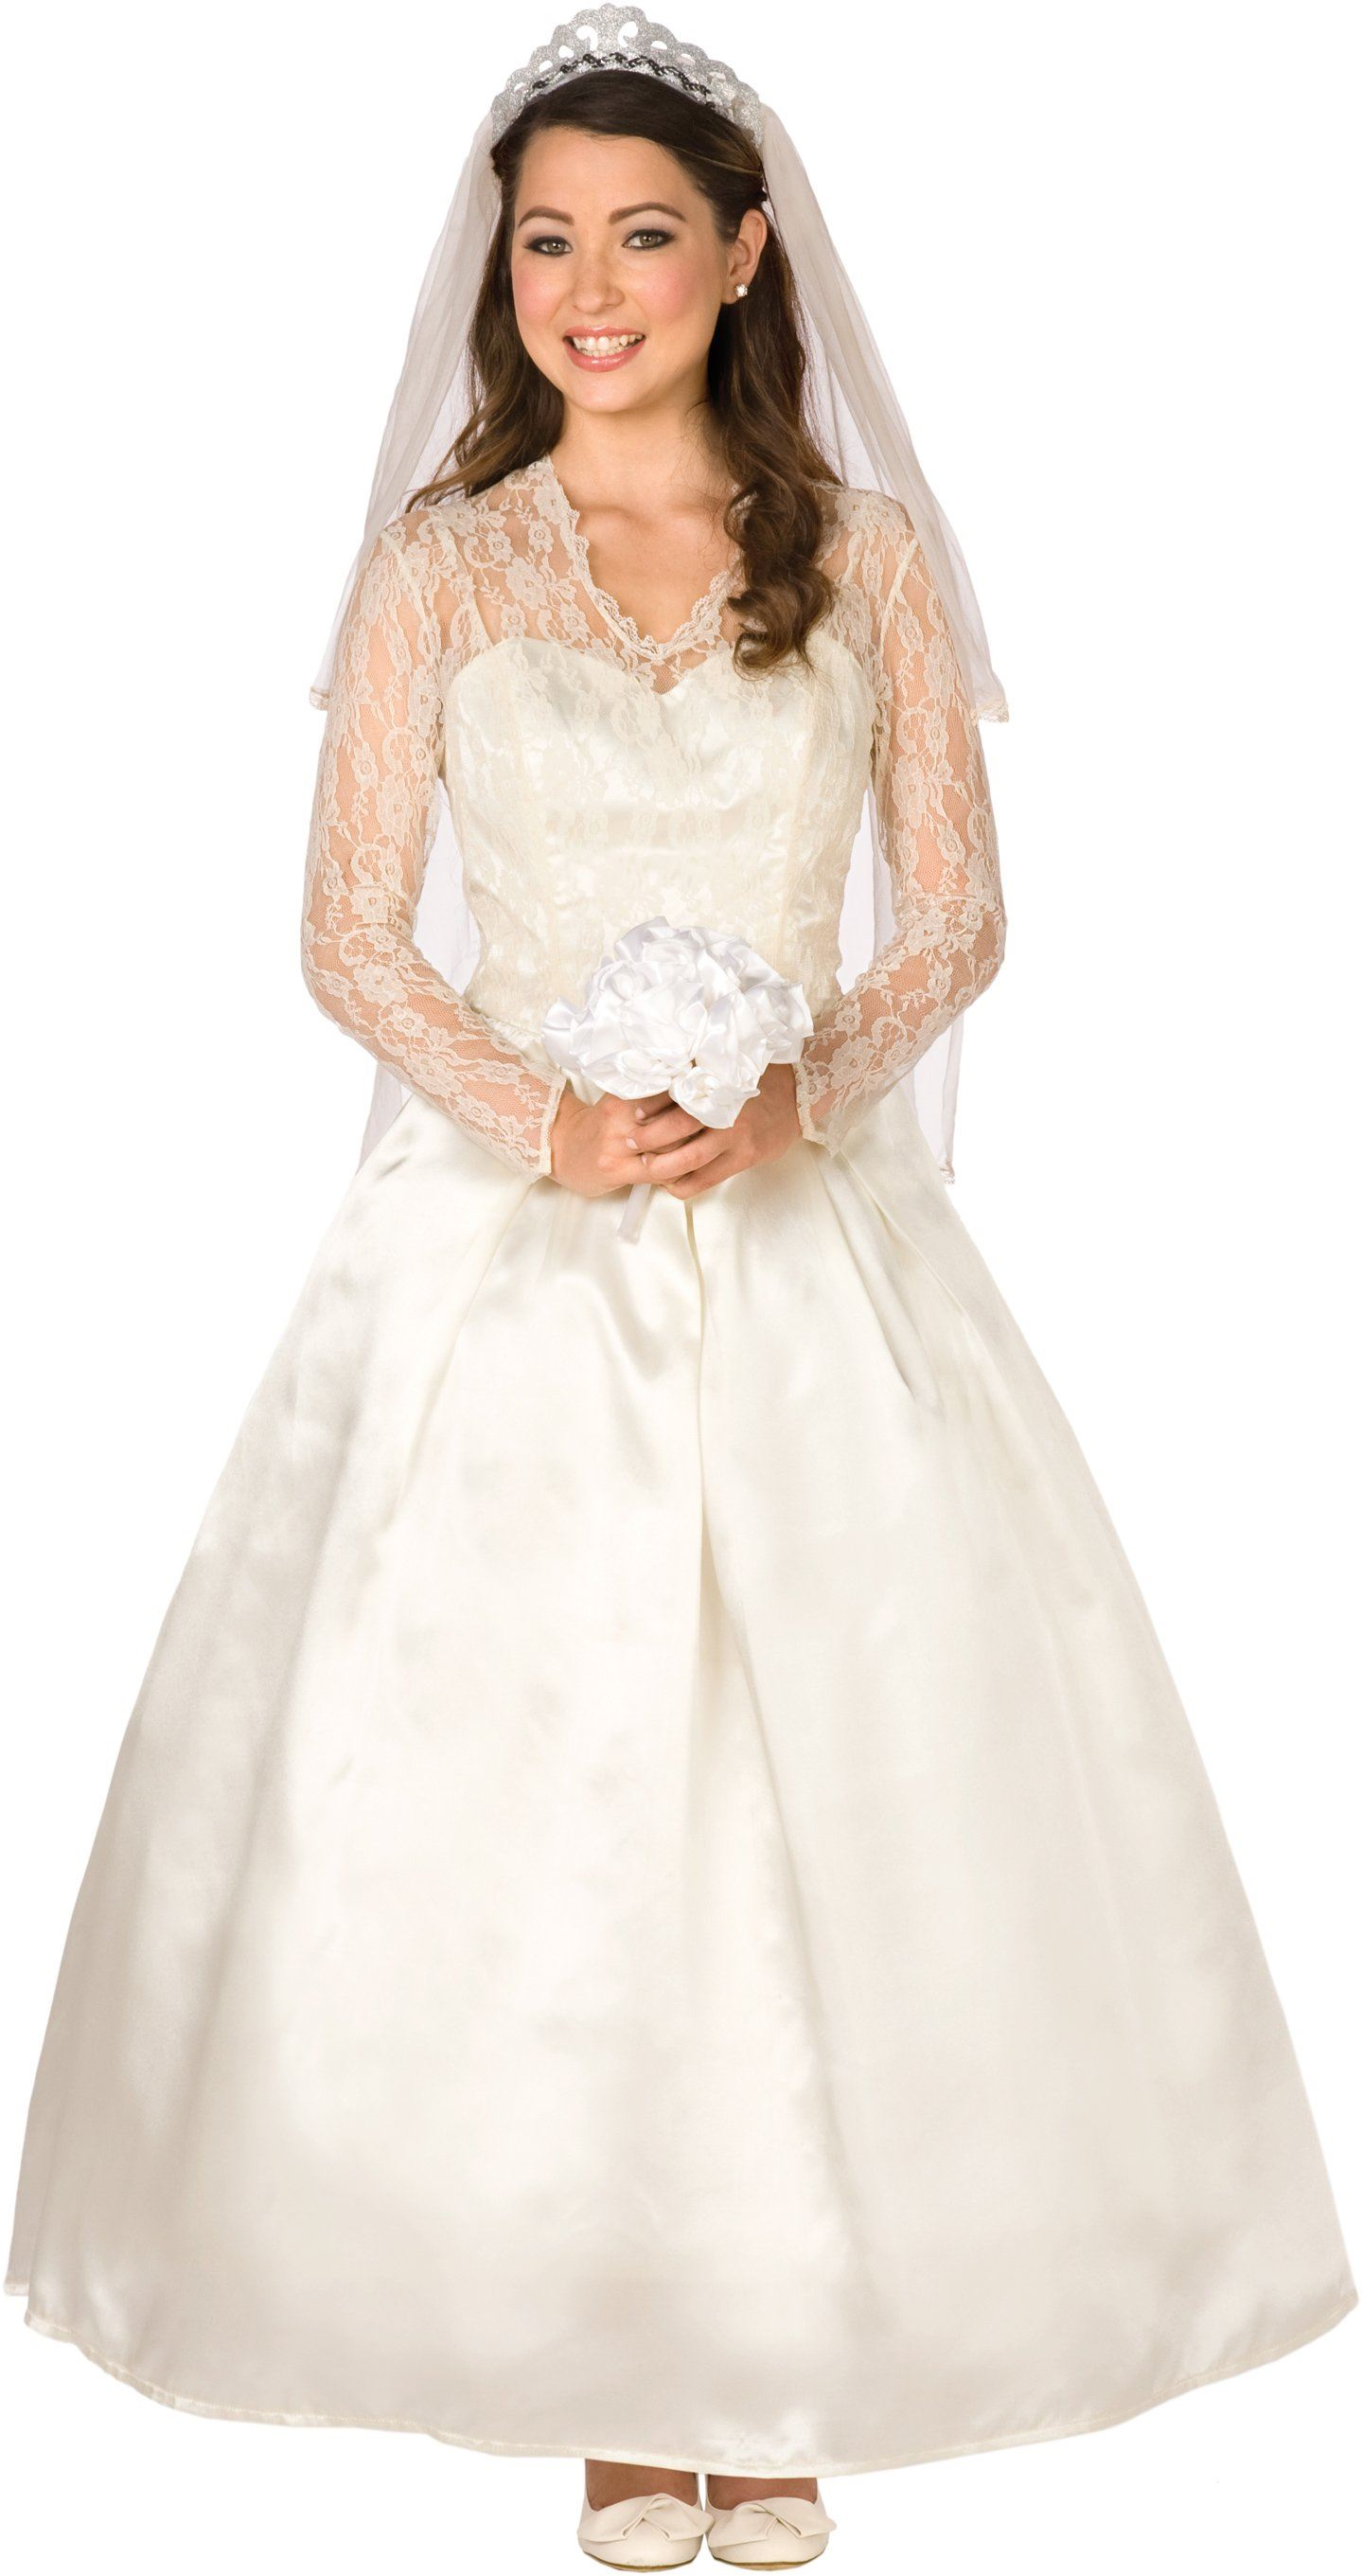 buy and sell new or used wedding dresses wedding favors wedding